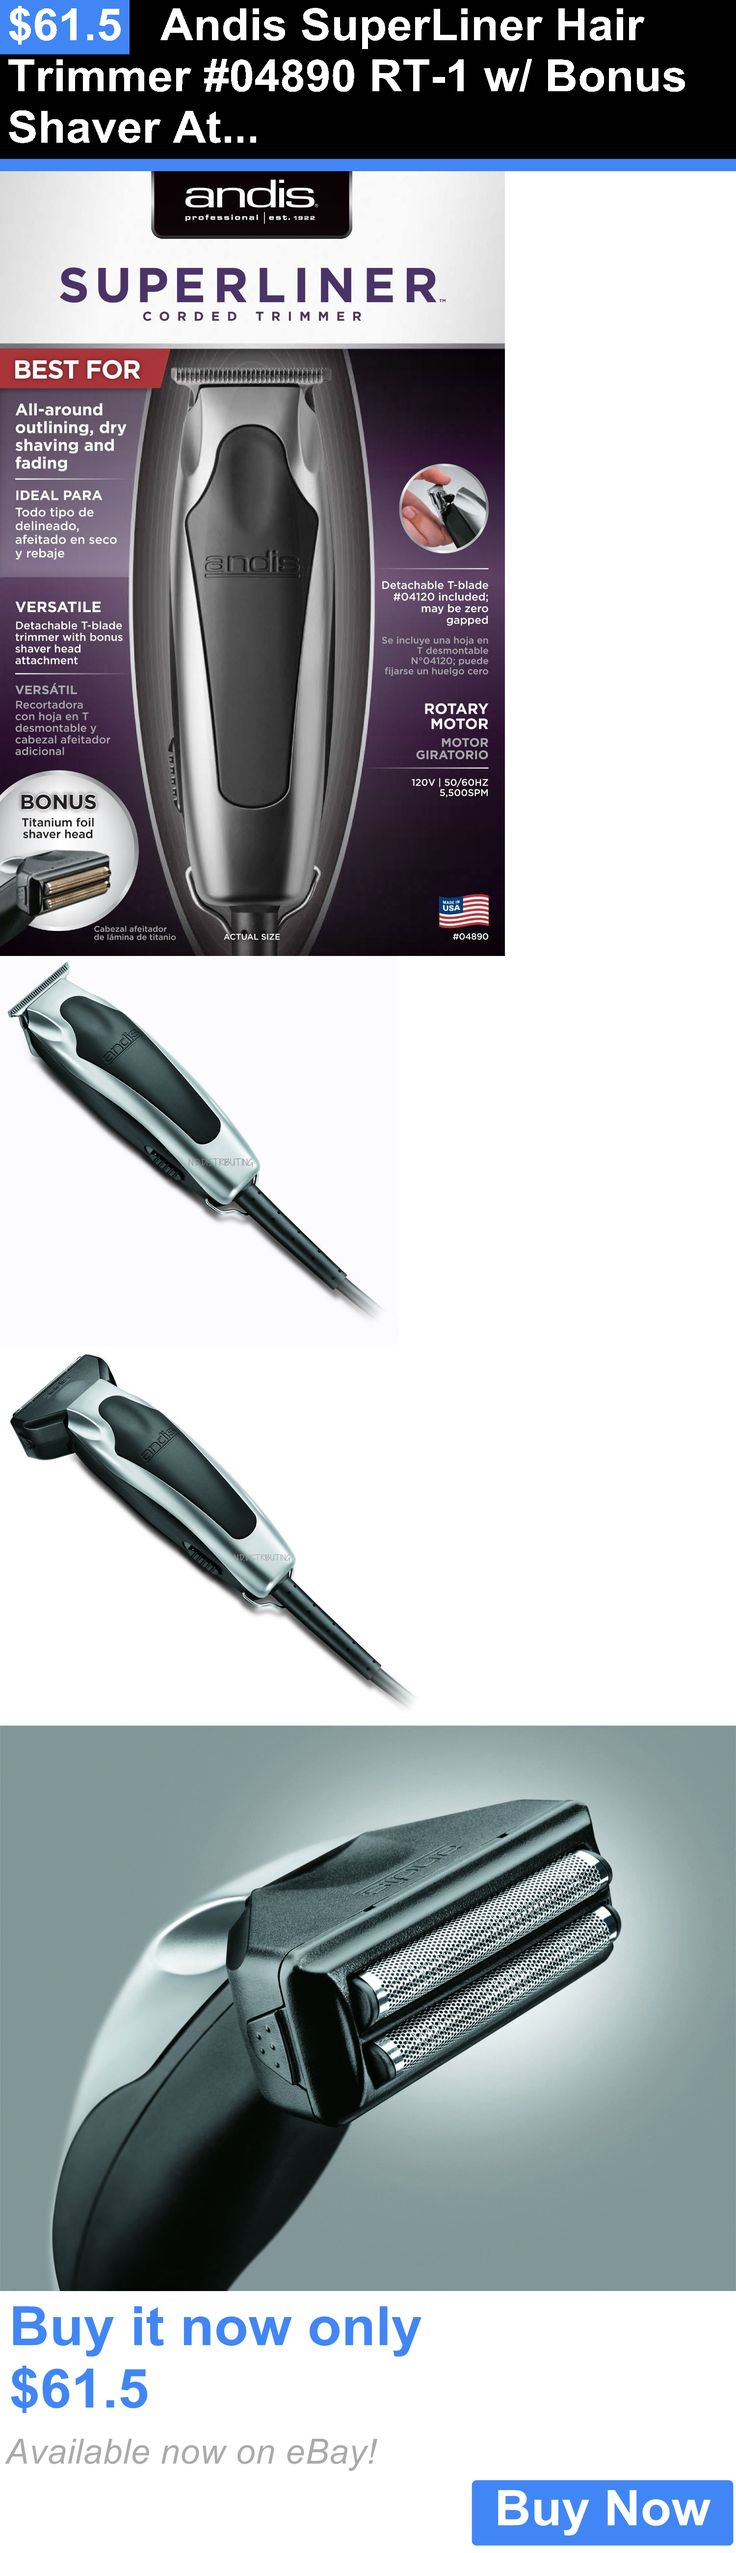 Clippers and Trimmers: Andis Superliner Hair Trimmer #04890 Rt-1 W/ Bonus Shaver Attachment - New BUY IT NOW ONLY: $61.5